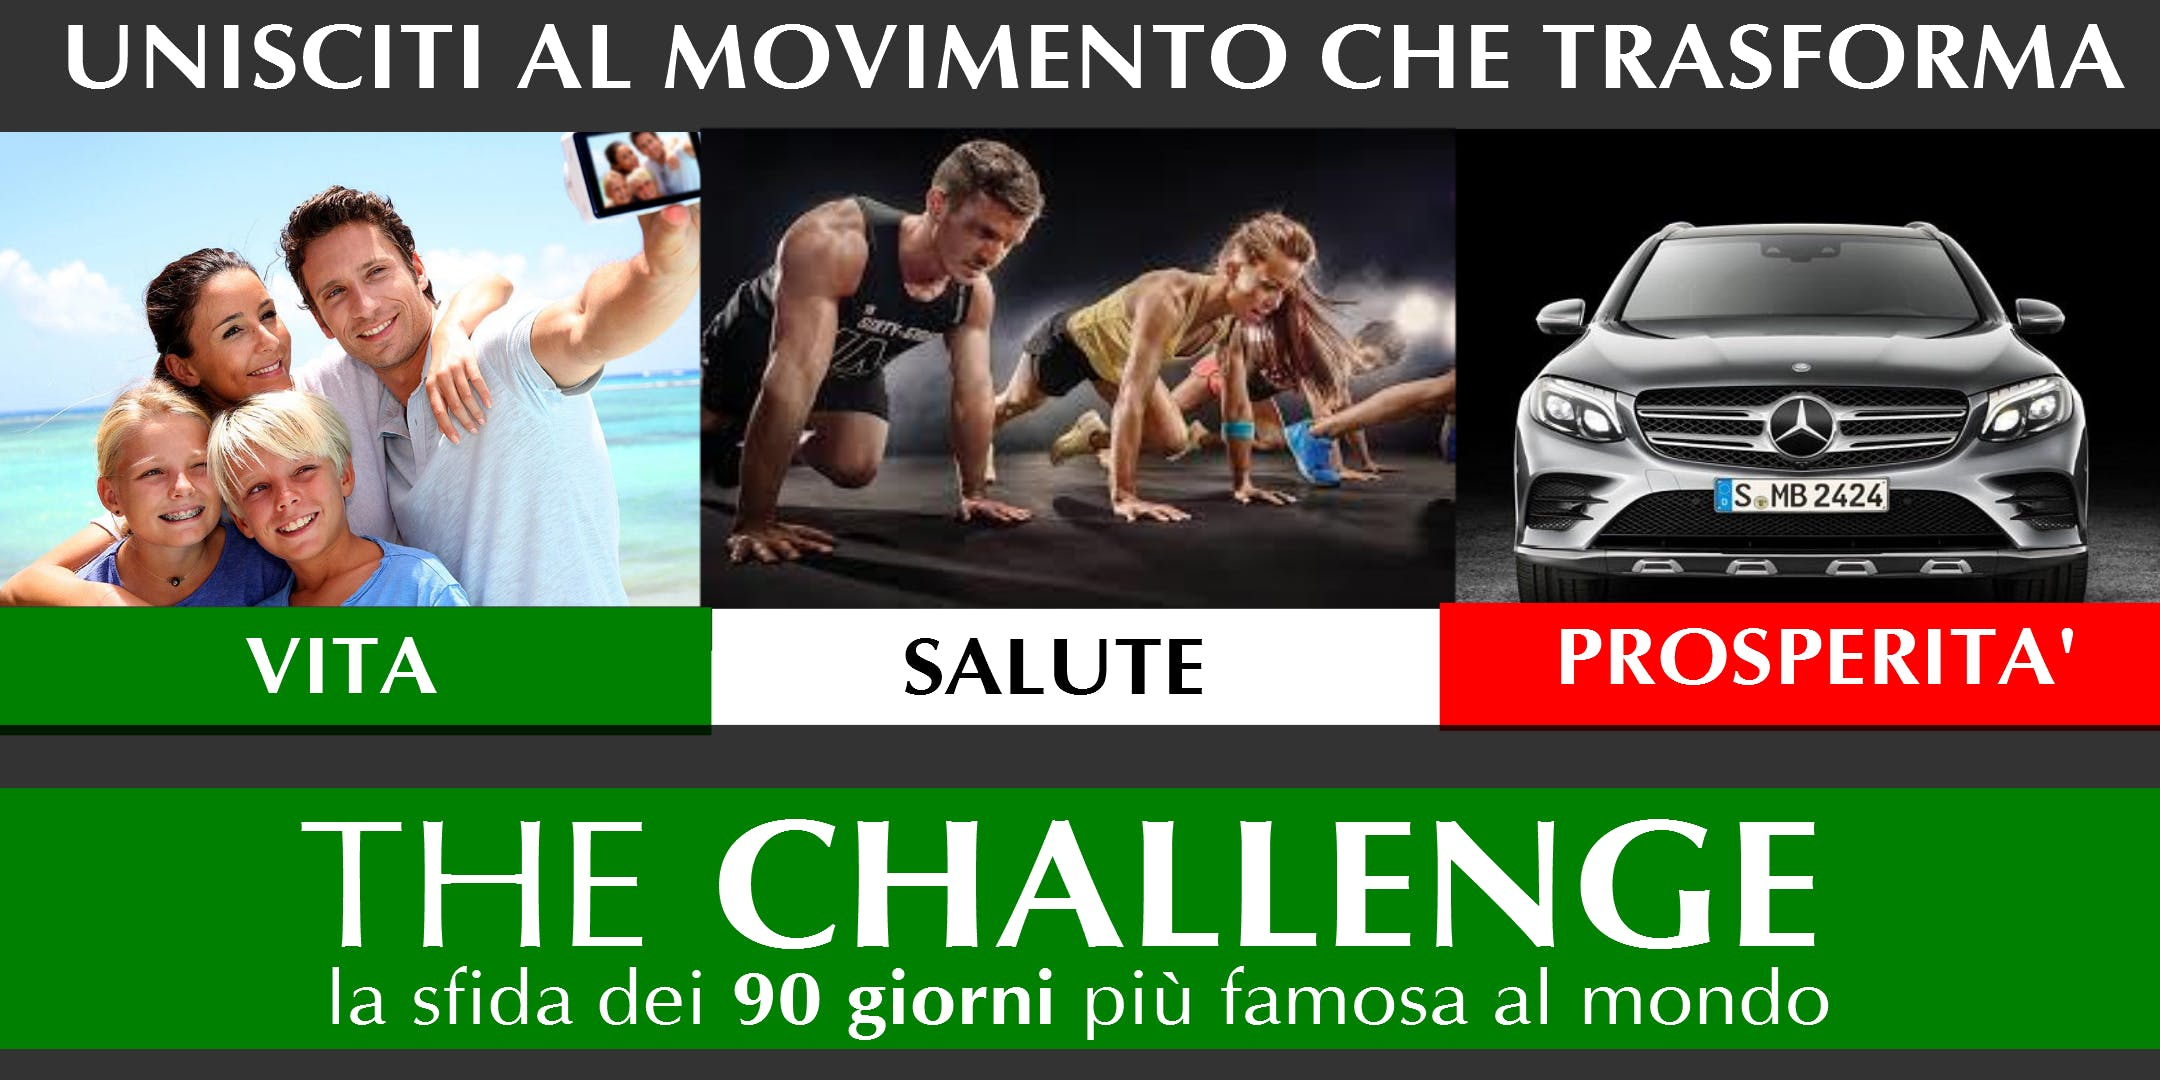 TheCHALLENGE (TO) 21/05